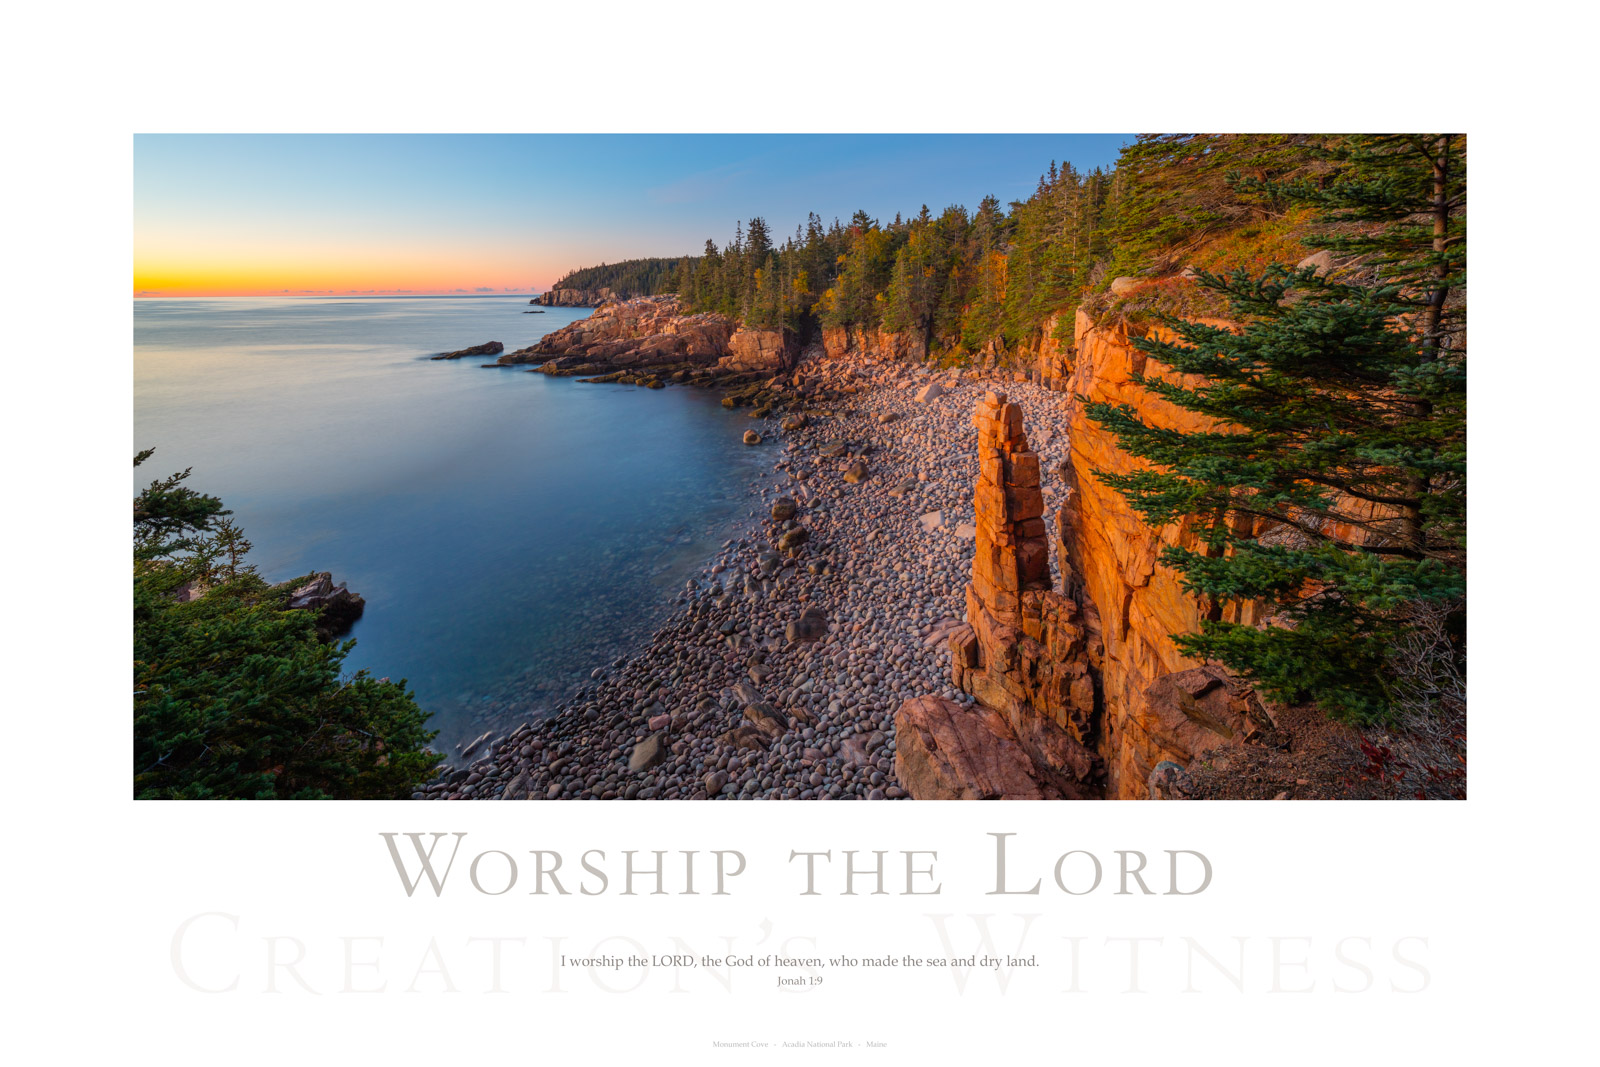 I worship the LORD, the God of heaven, who made the sea and dry land. Jonah 1:9